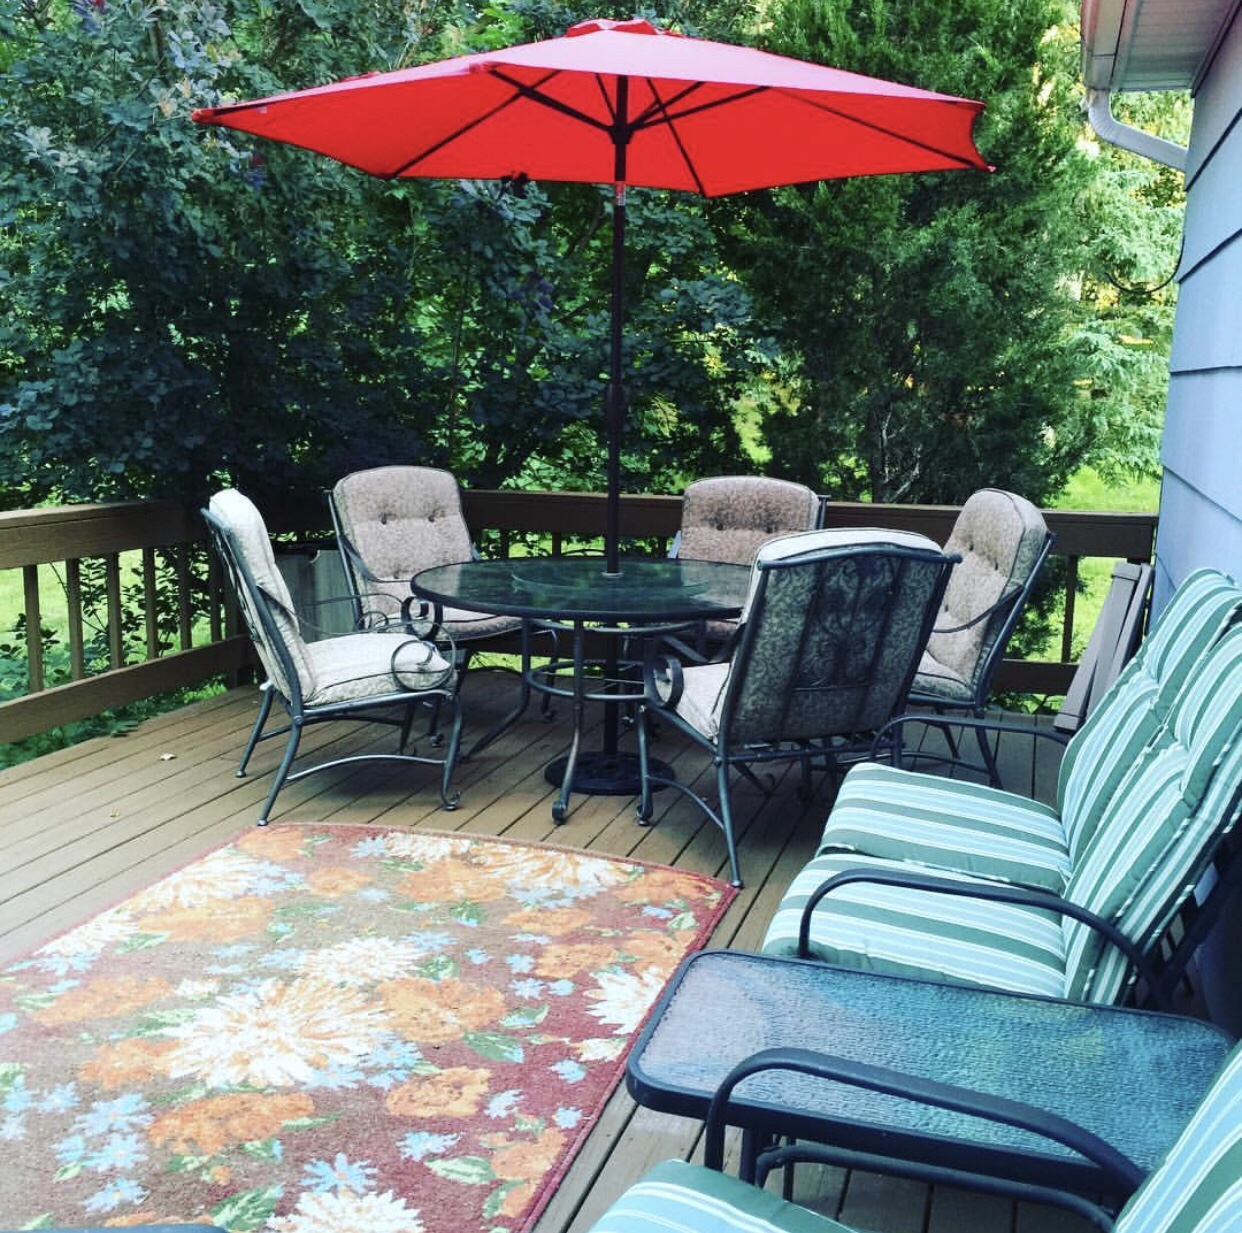 Patio furniture on the deck in the spring